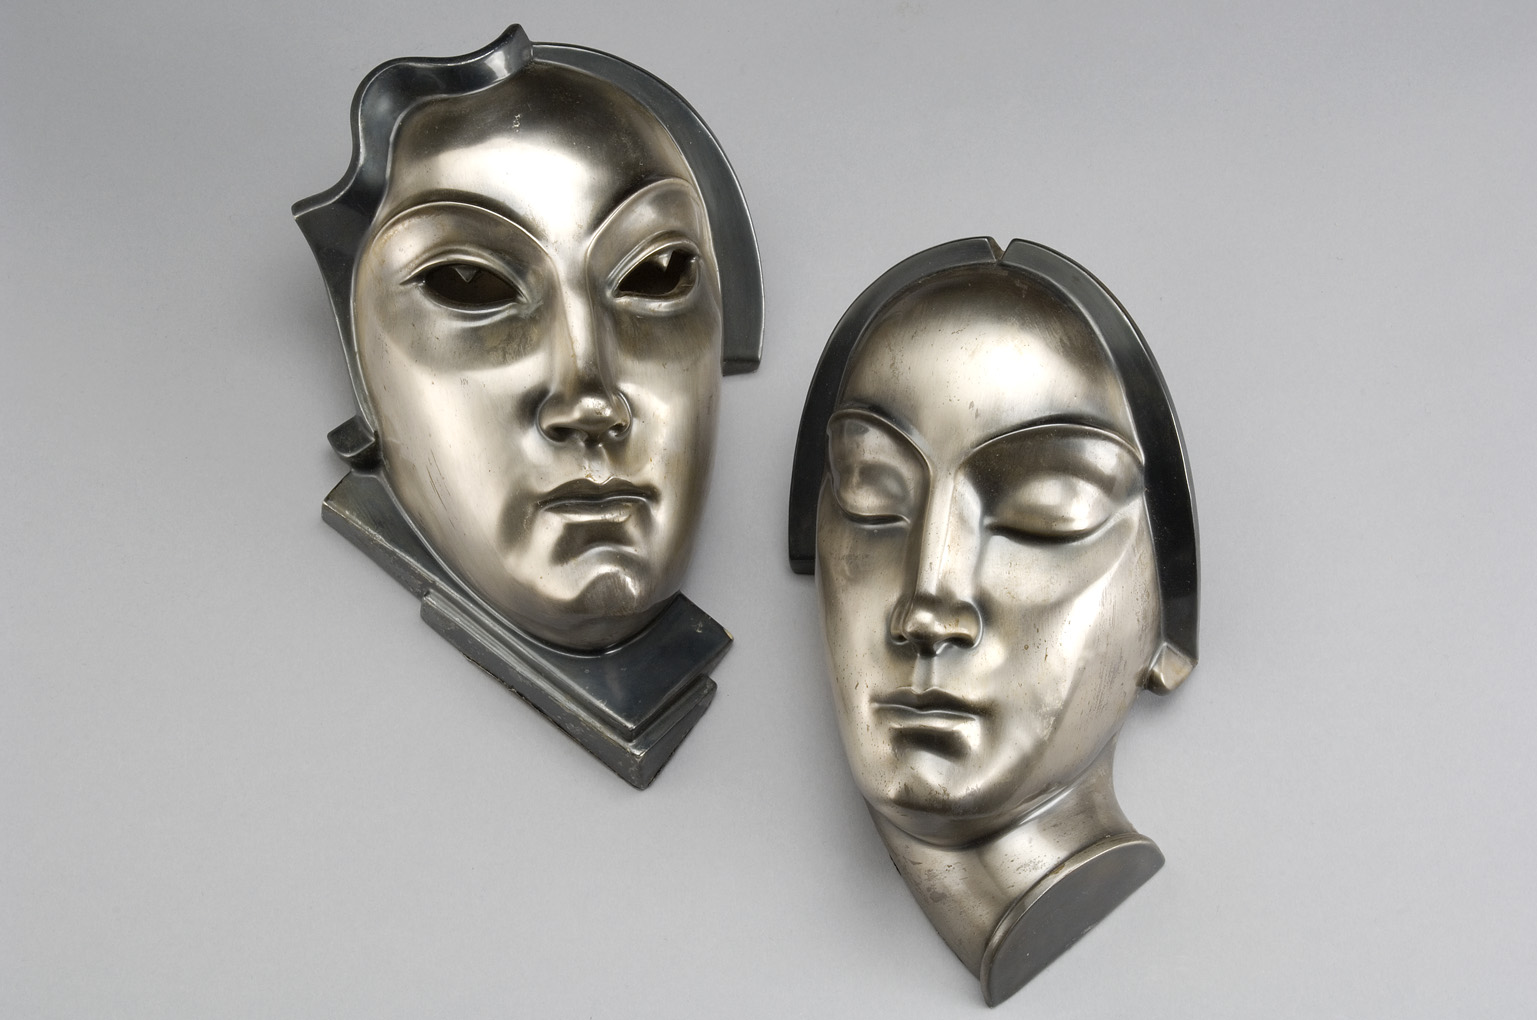 Pair of Masks